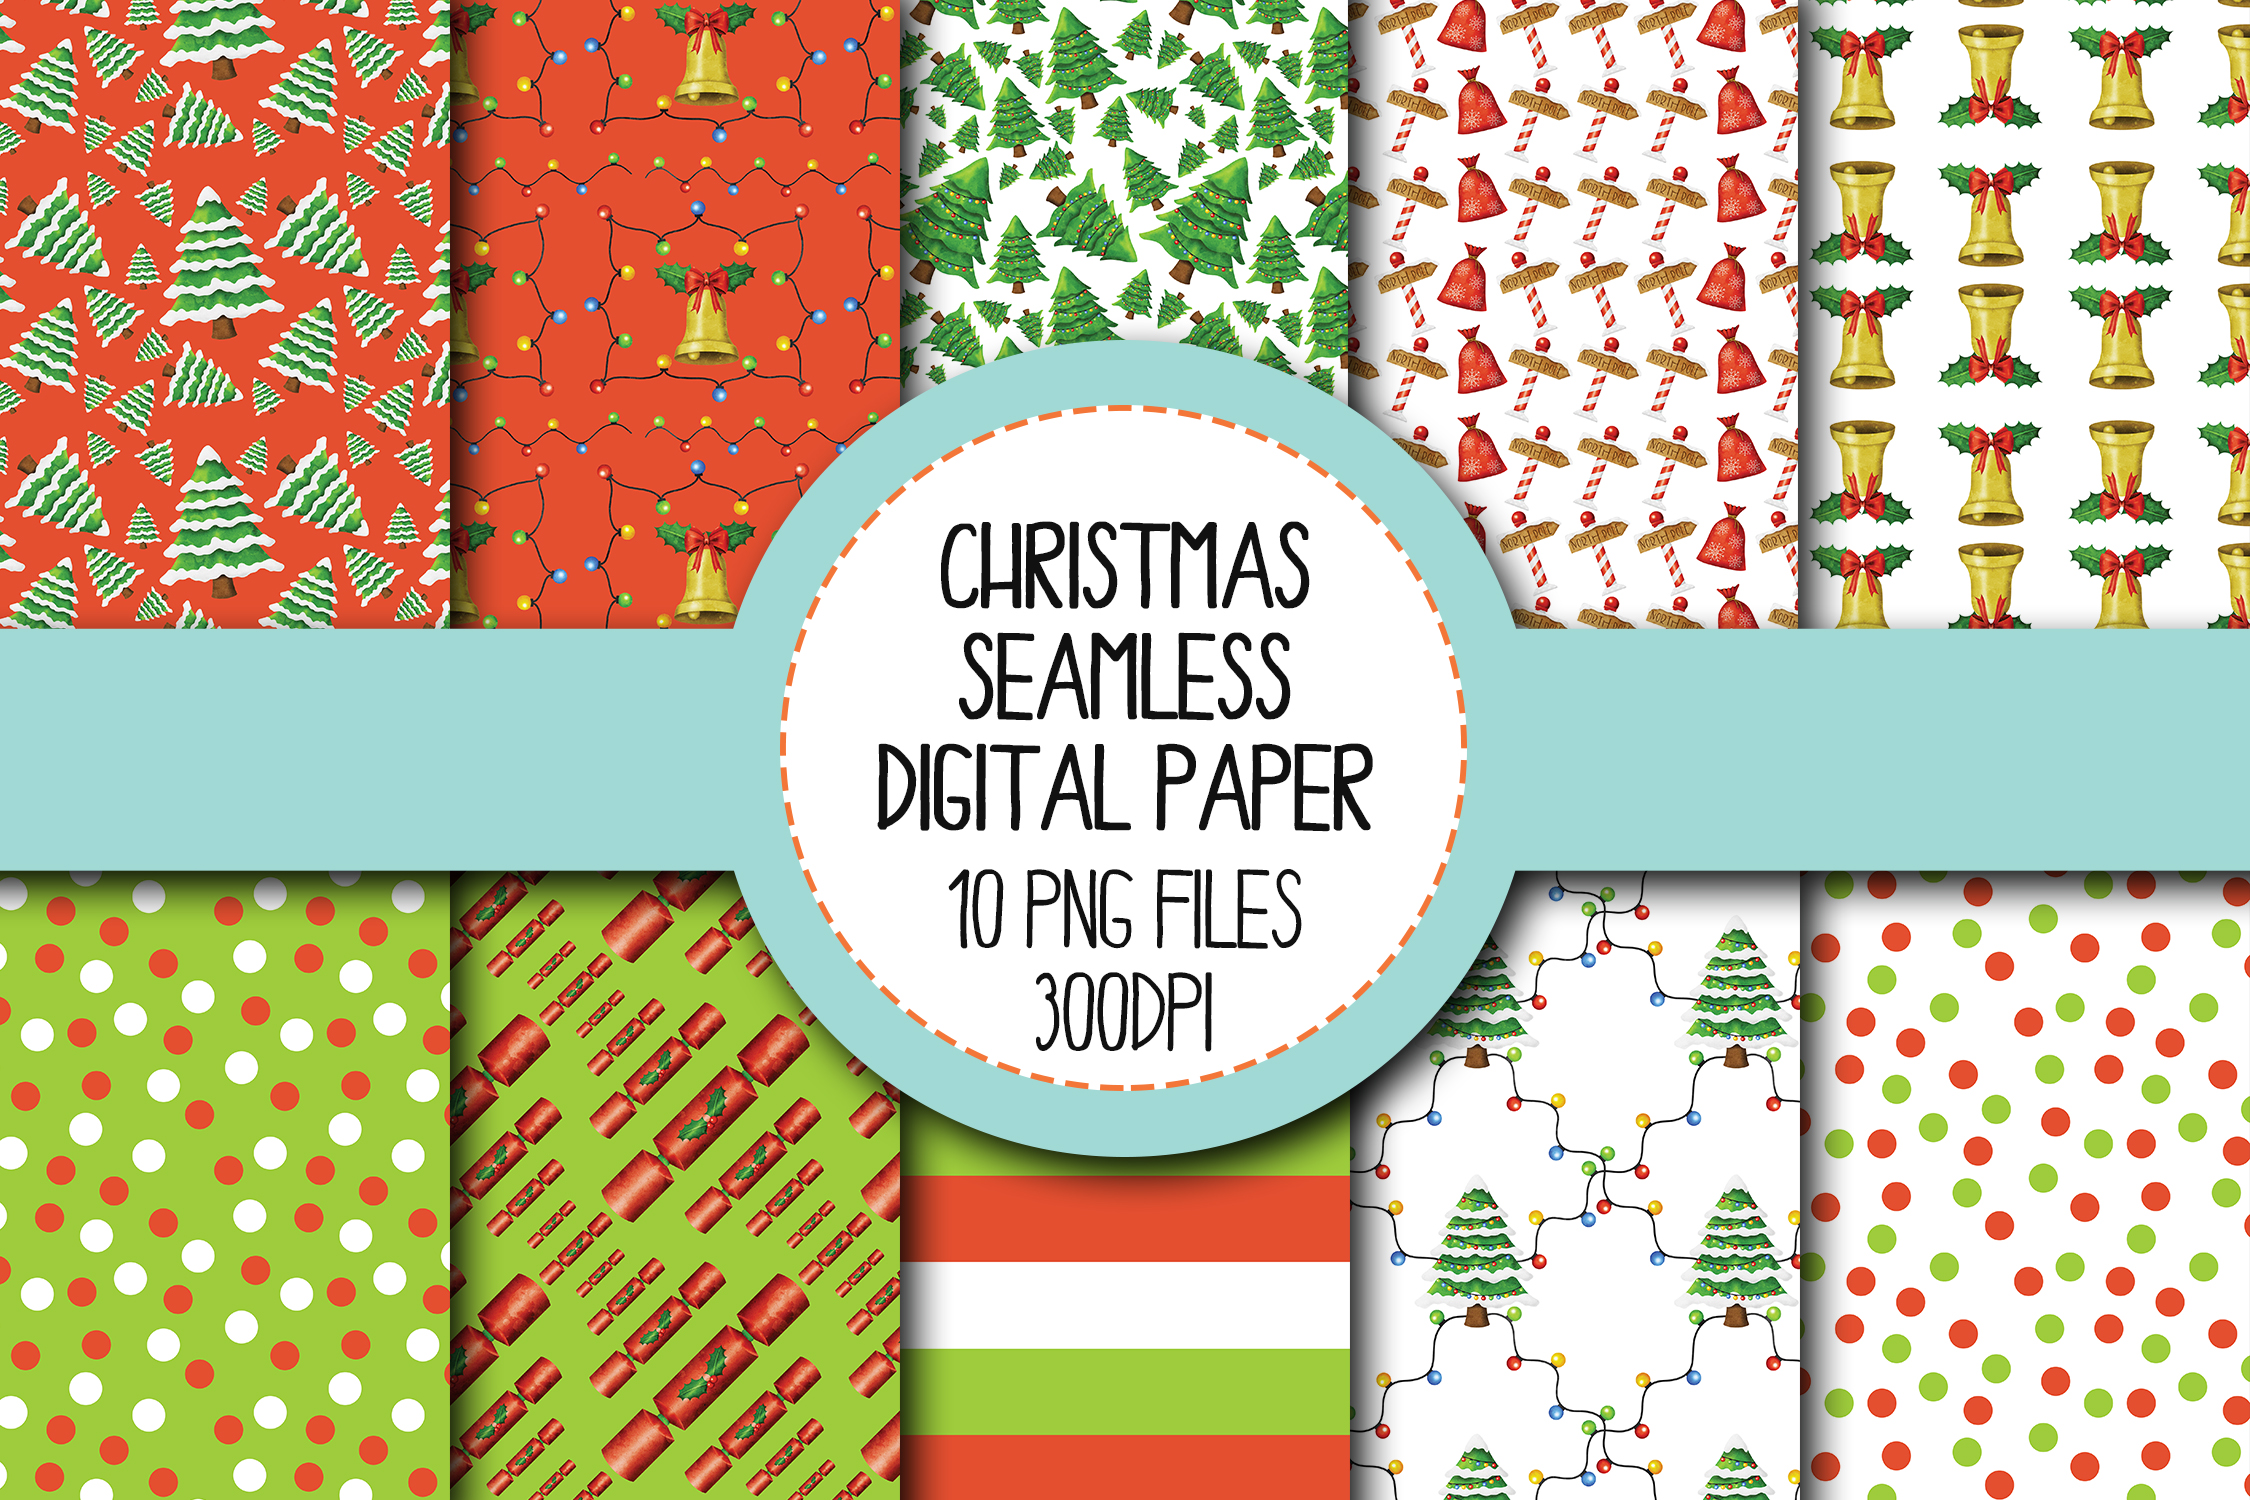 Watercolor Christmas Seamless Digital Papers Set 2 example image 1